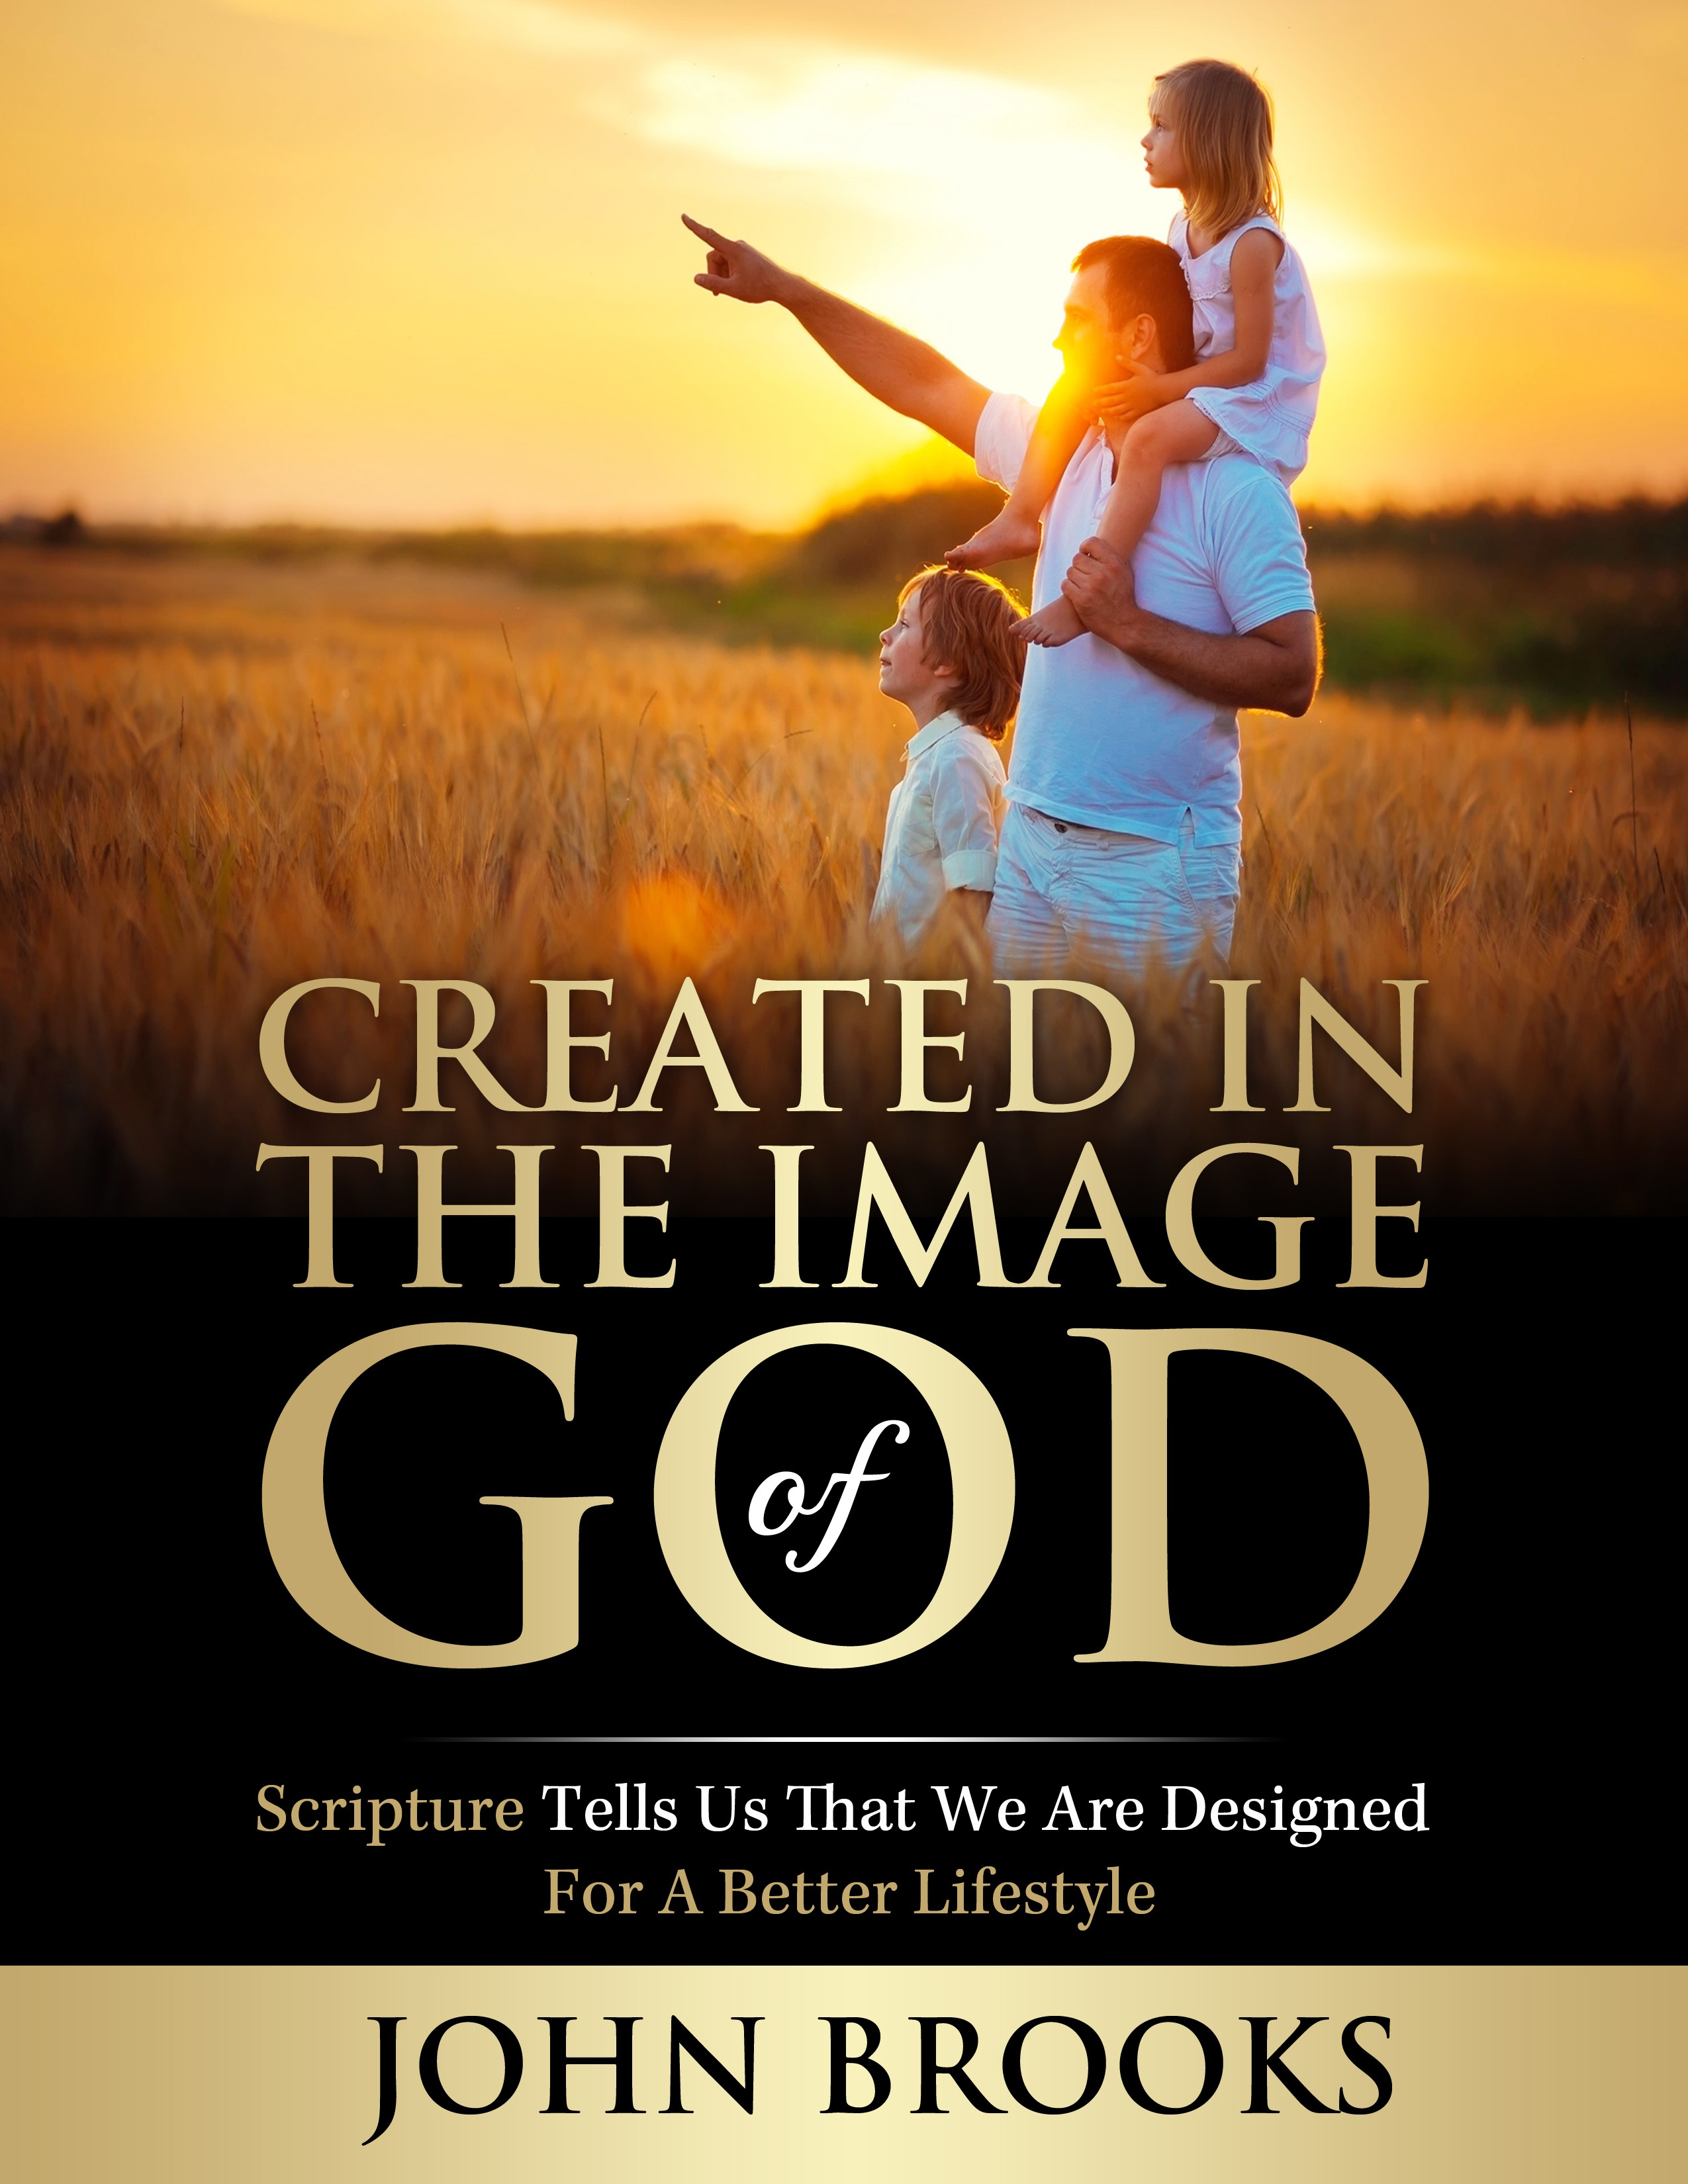 Promote Christian lifestyle in book cover